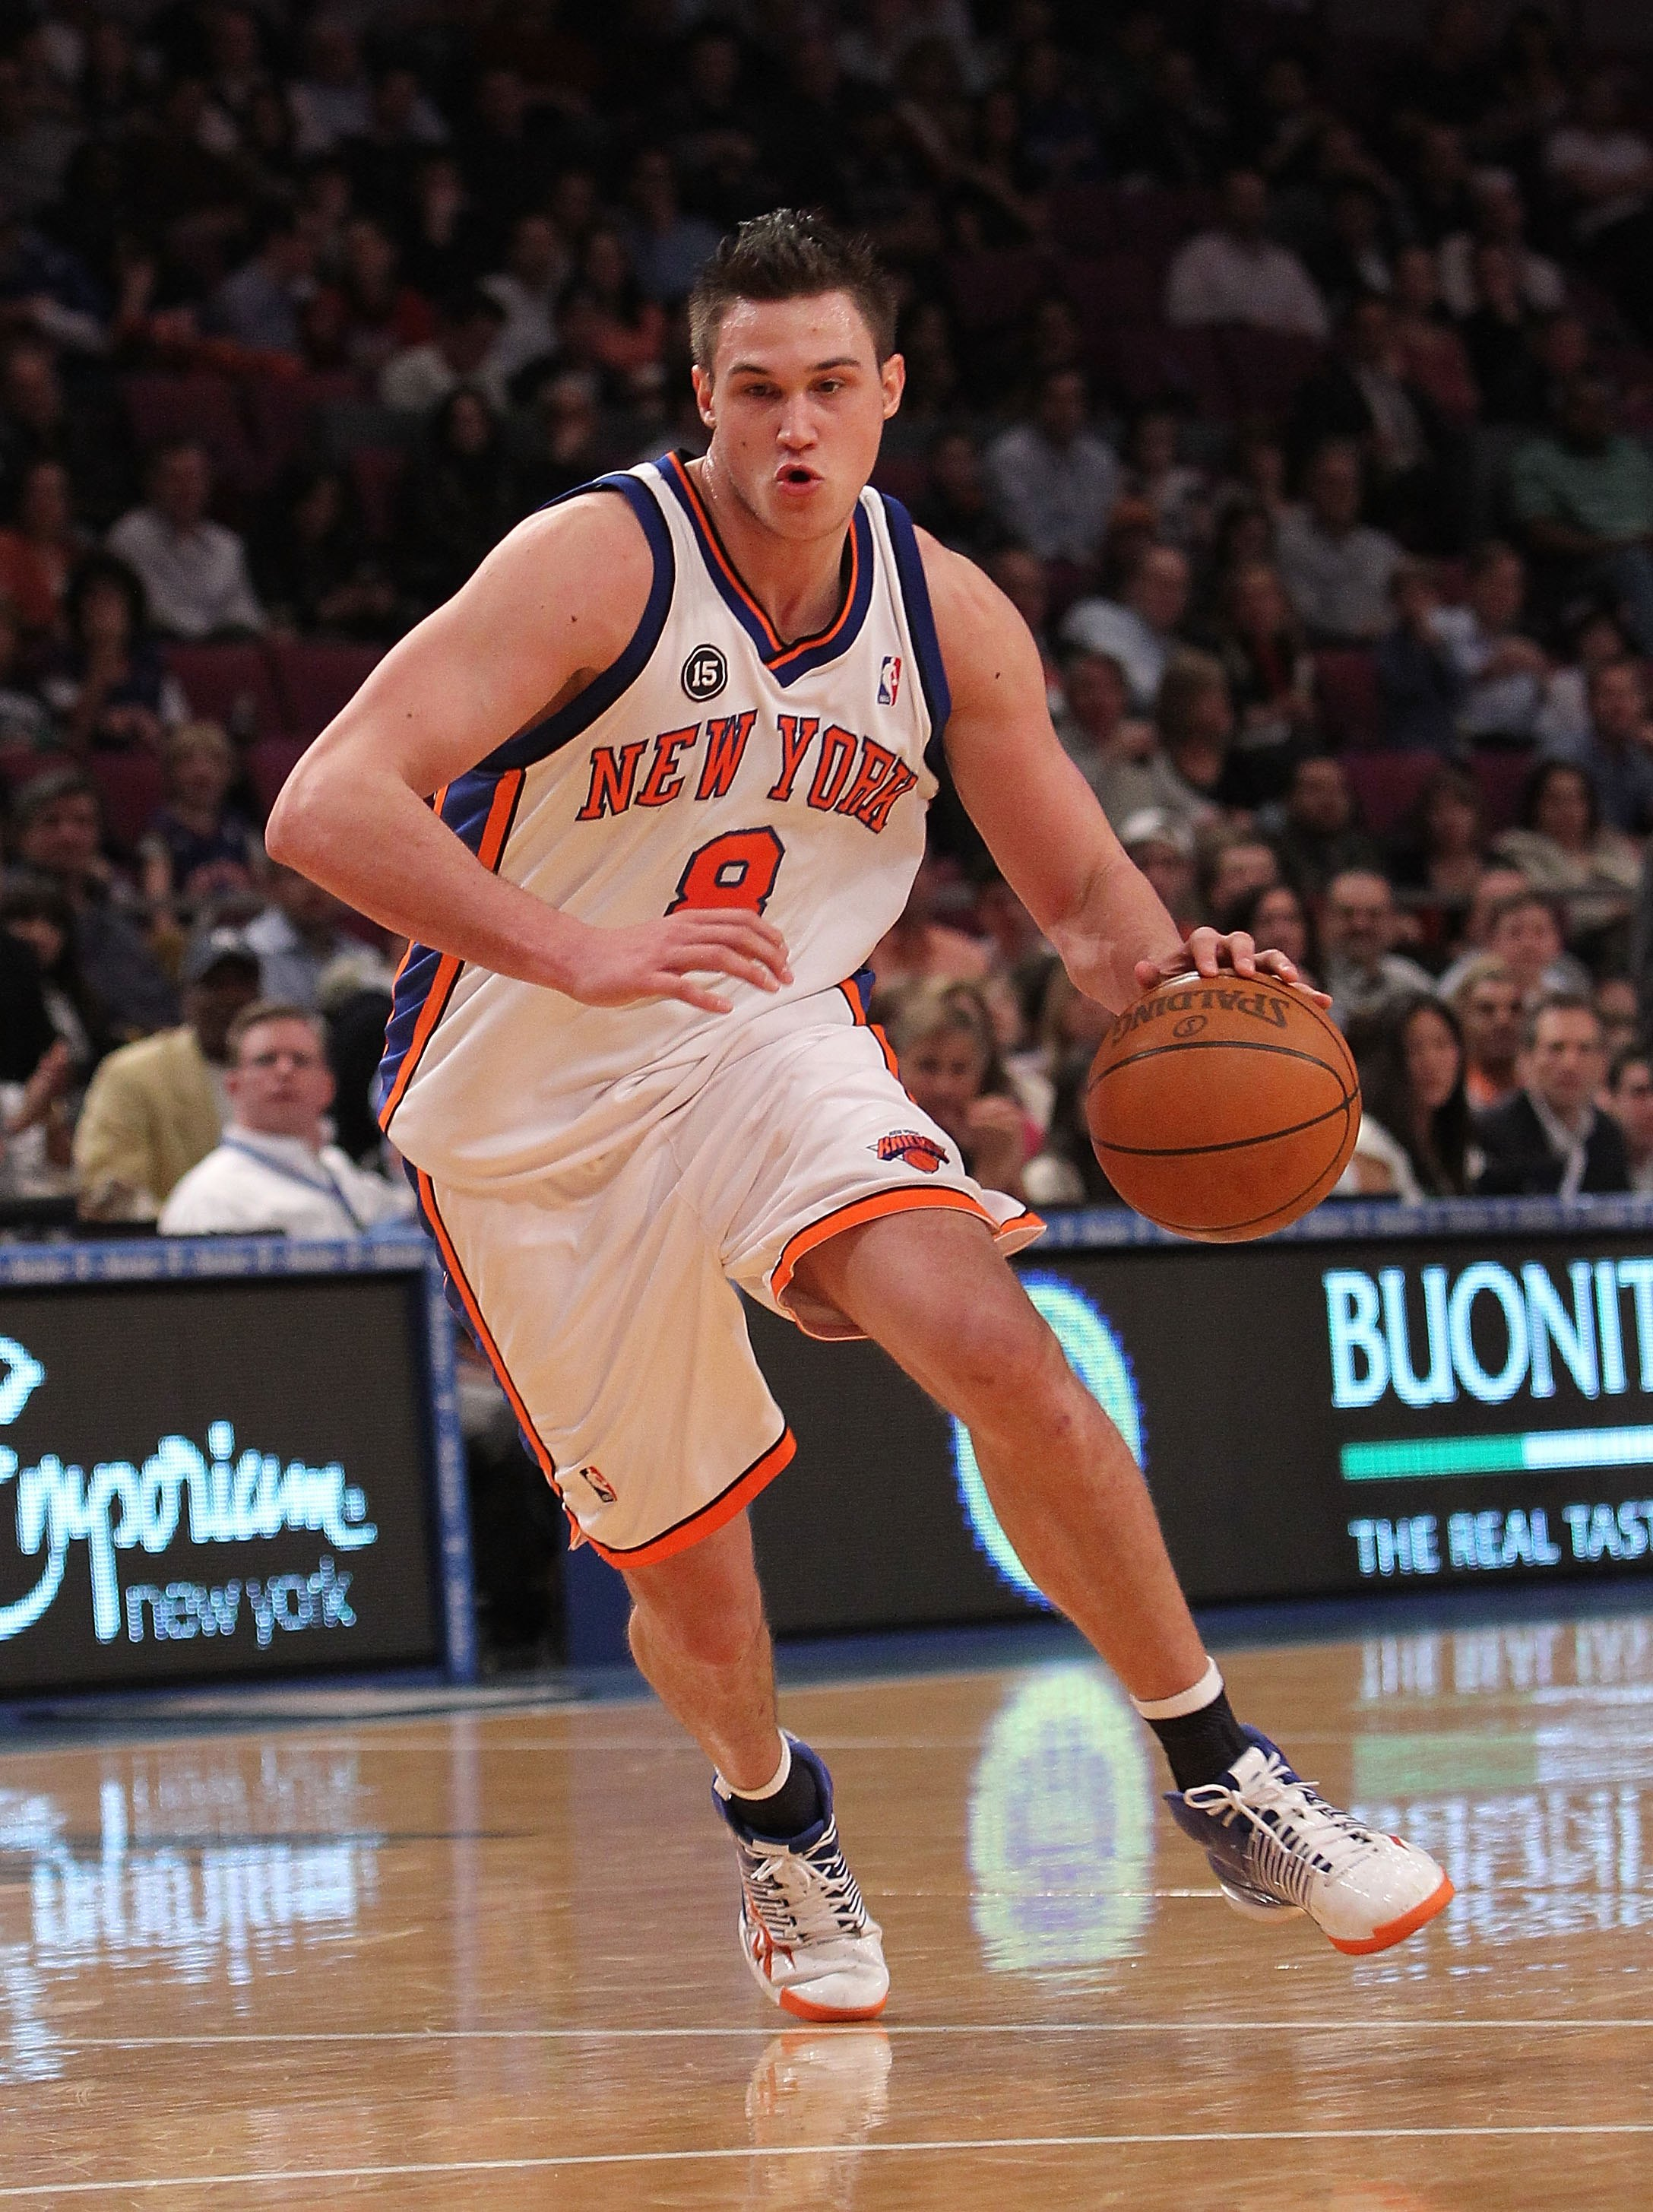 Gallinari will be known as the man who brought Carmelo to New York if the Nuggets go that route.